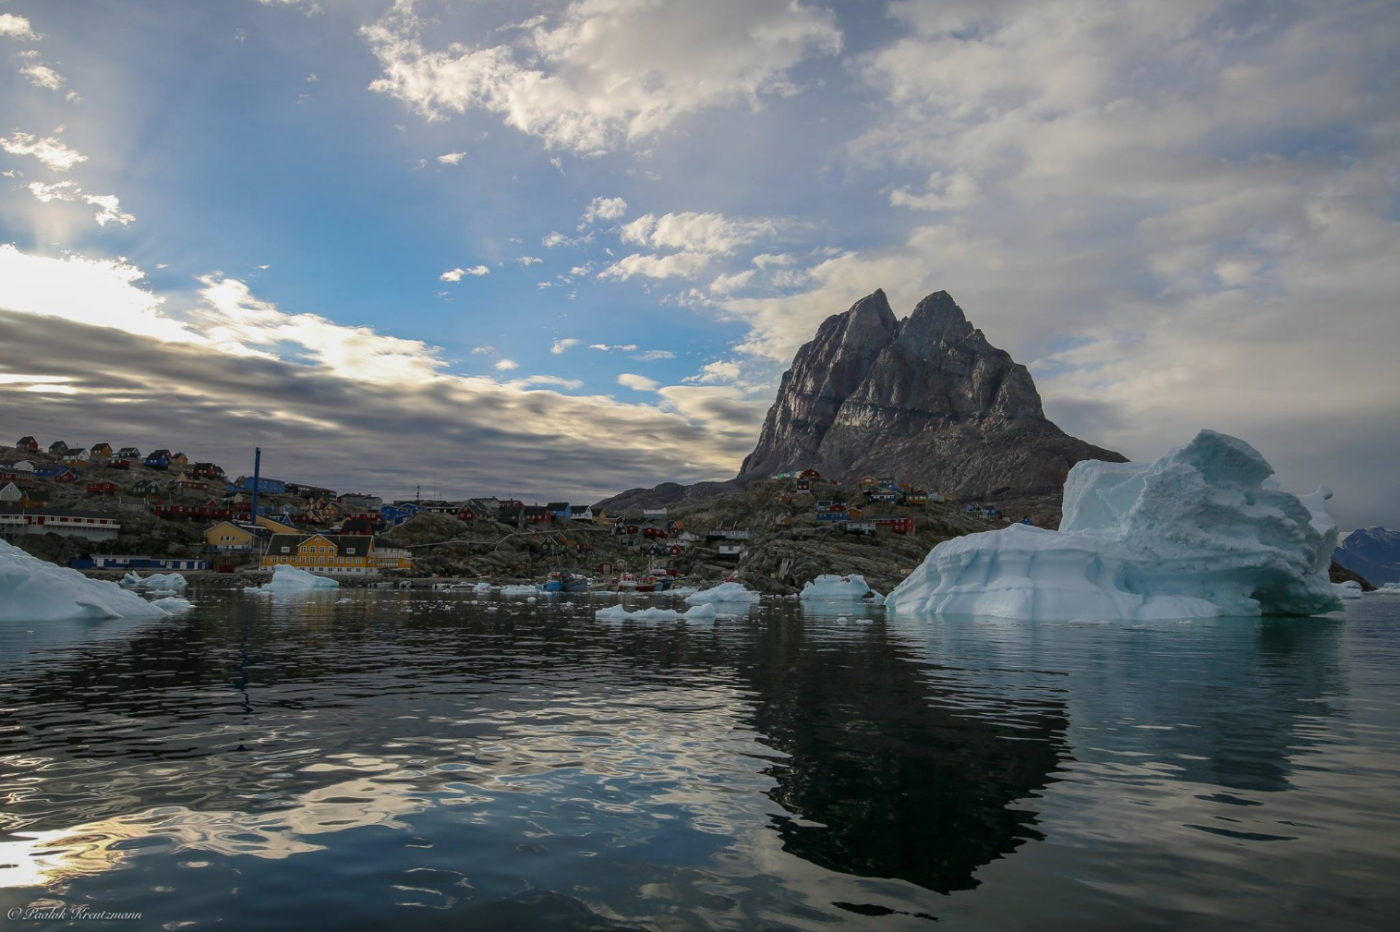 Uummannaq and the heart-shaped mountain. Photo by Uummannaq Seasafaris ApS, Visit Greenland